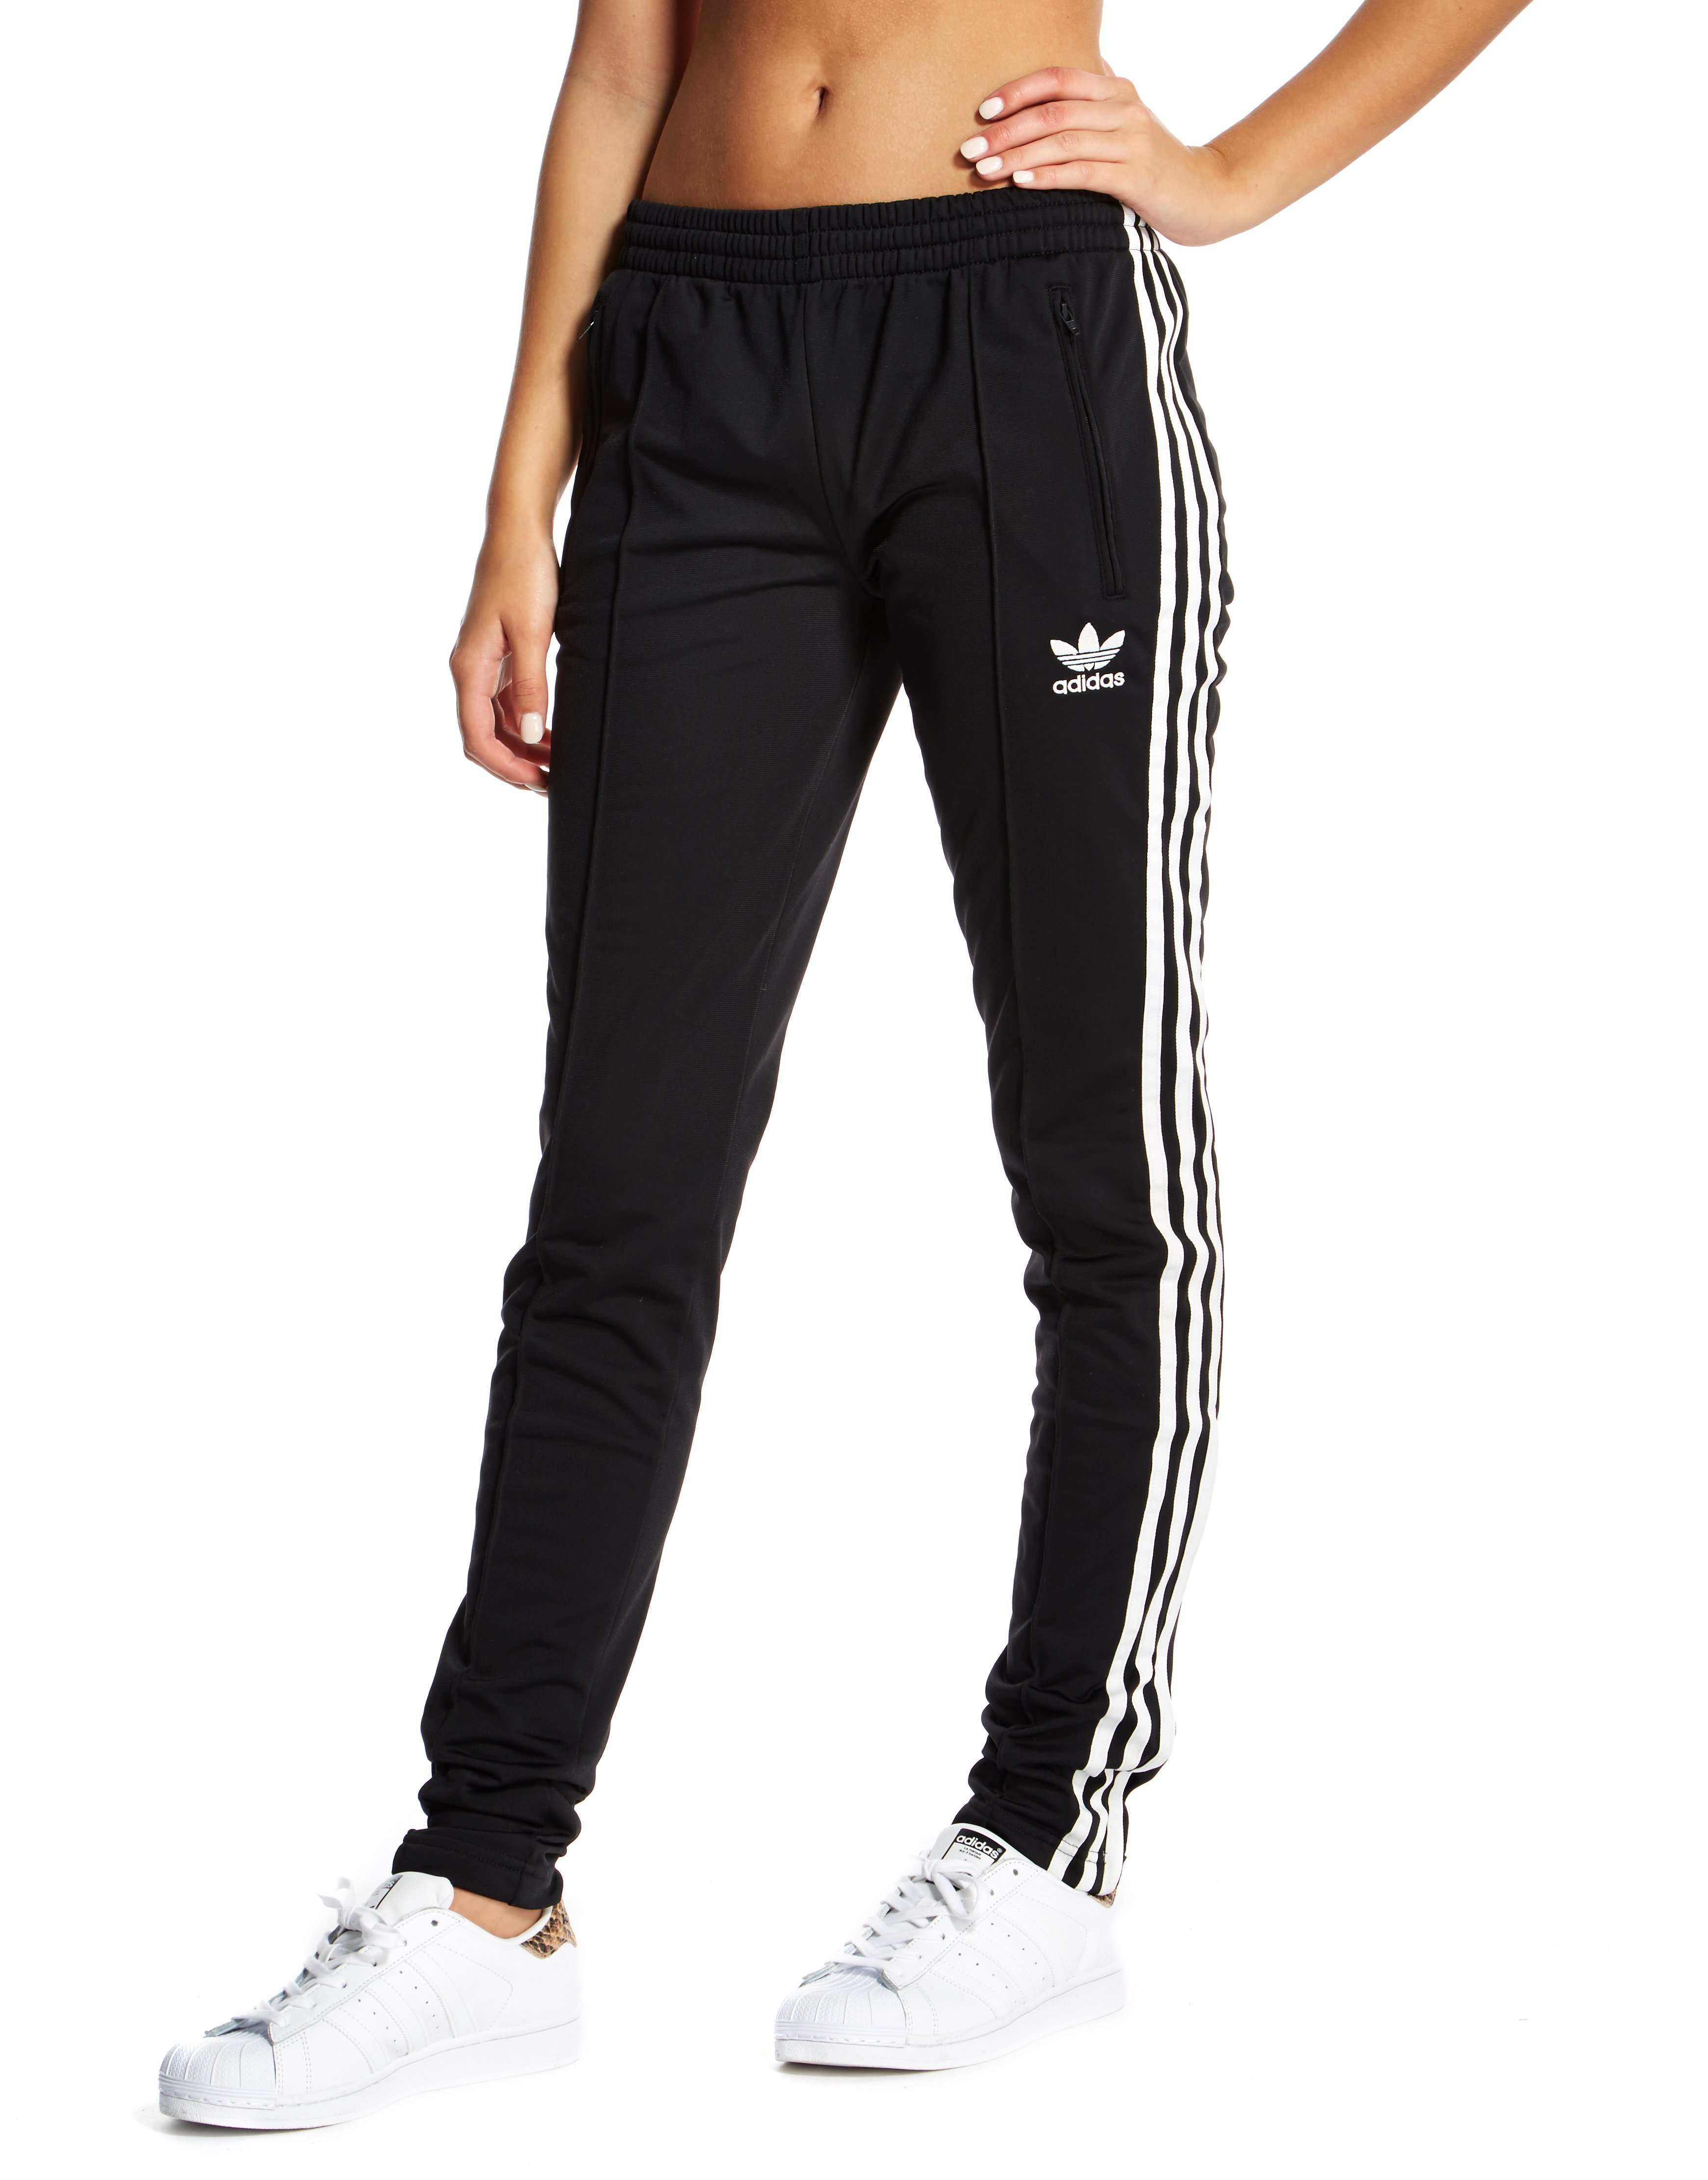 Model Adidas Originals Supergirl Track Pants  Women39s  Casual  Clothing